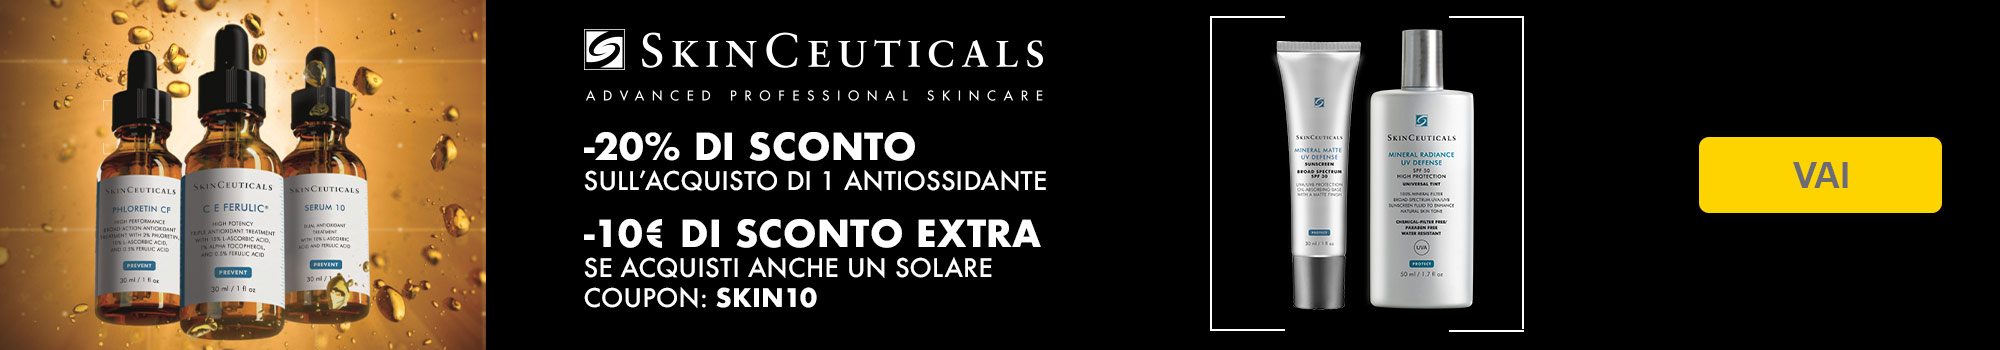 skinceuticals sole